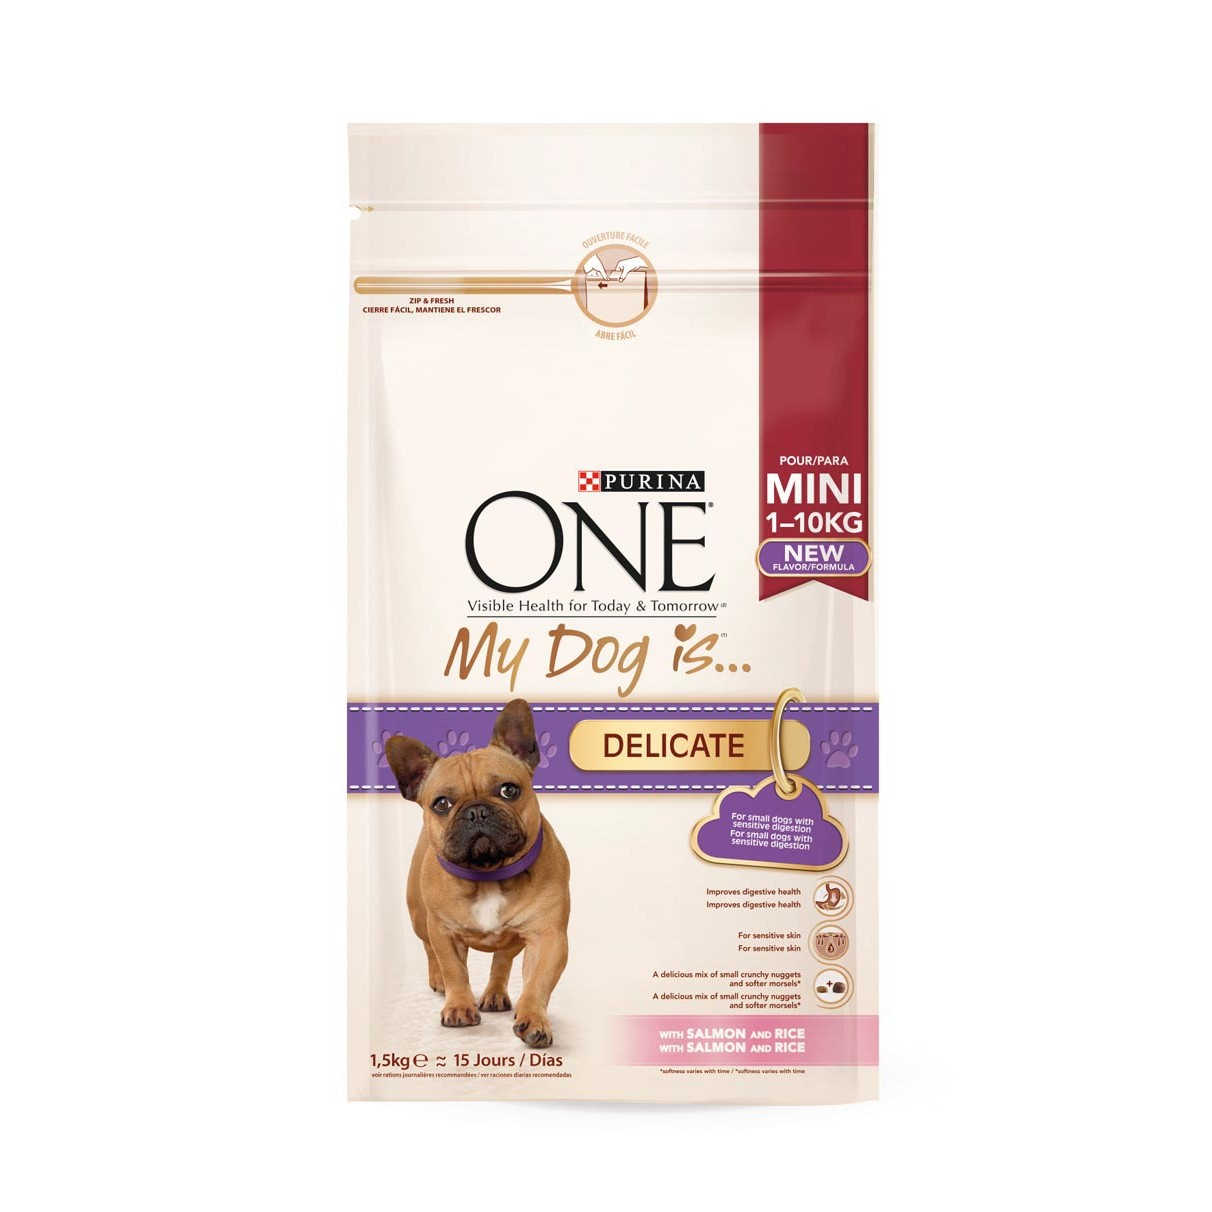 Purina One Mini comida perro my dog is delicate salmon & arroz de 1,5kg.